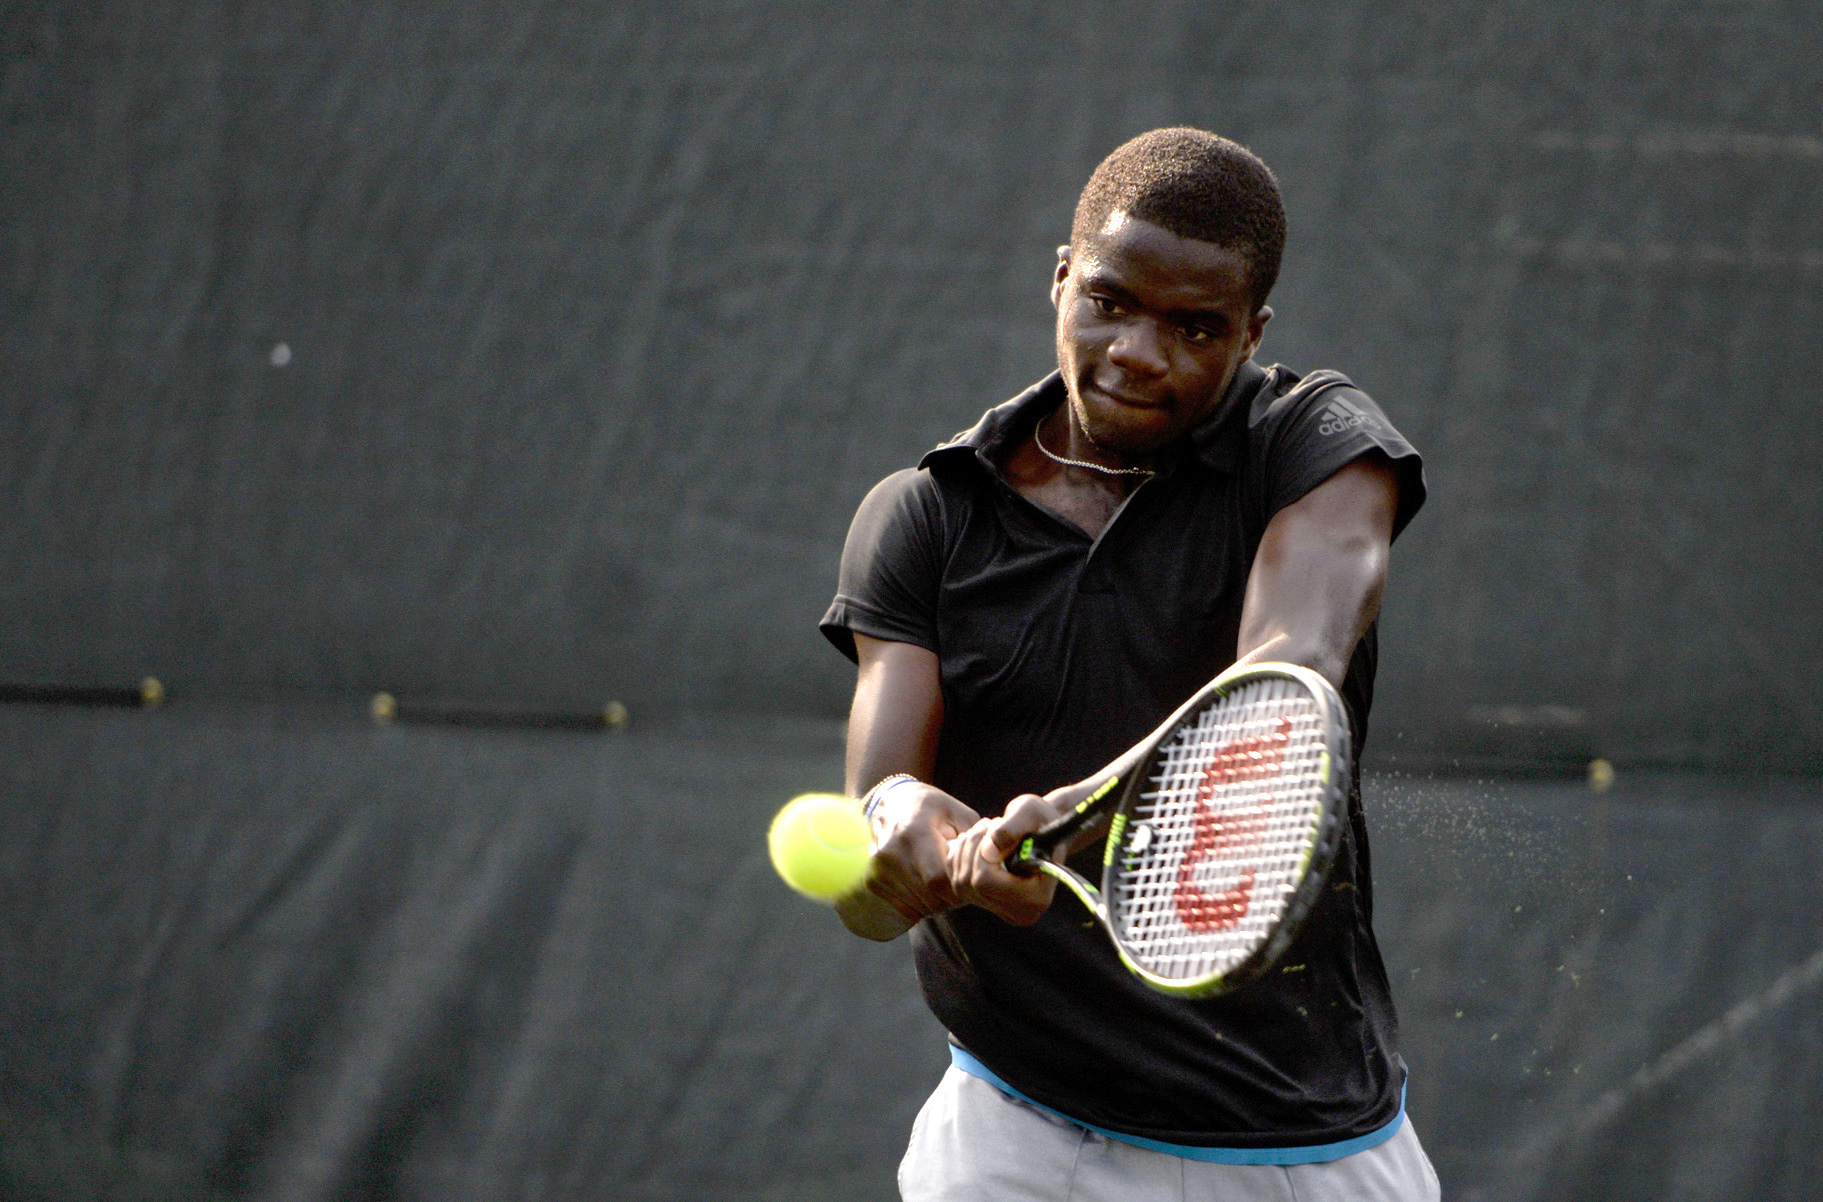 FILE - In this April 25, 2015, file photo, Frances Tiafoe, of the United States, returns a serve from James McGee, of Ireland, during the semifinals of the St. Joseph's/Candler Savannah Challenger tennis tournament in Savannah, Ga.  Tiafoe is among a new